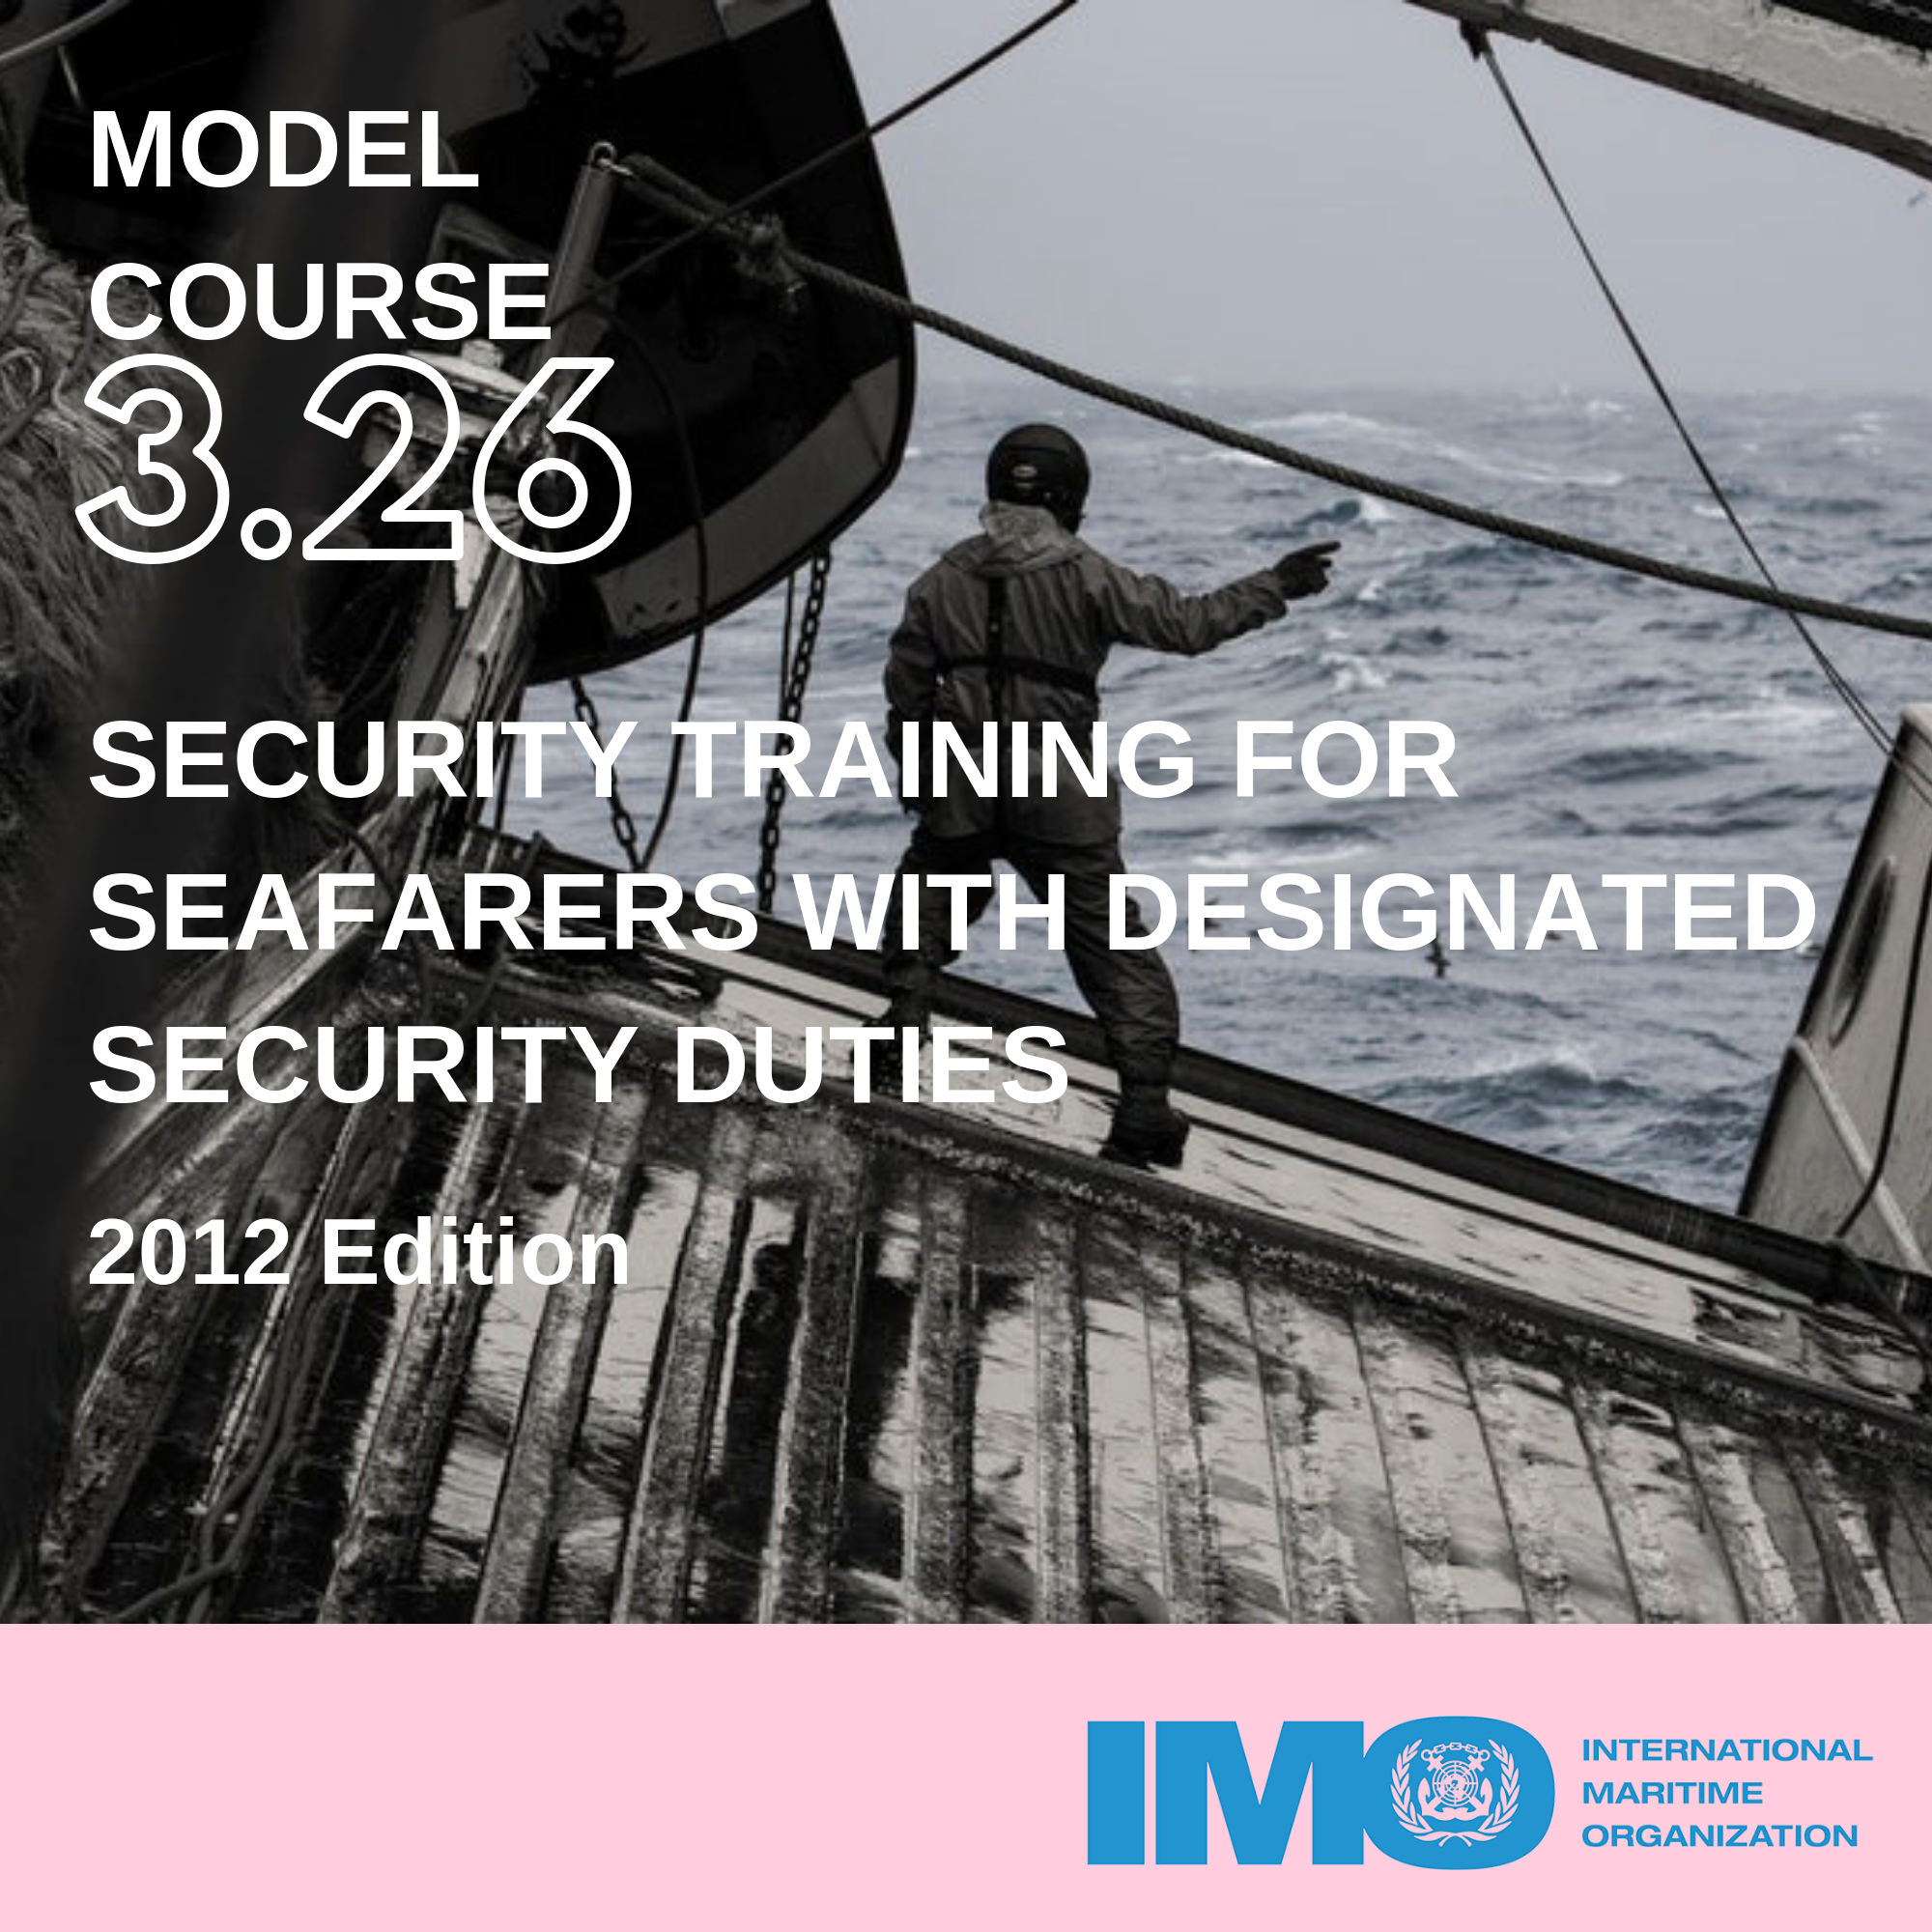 OMI 3.26 Formación sobre protección para la gente de mar que tenga asignadas tareas de protección (Security Training for Seafarers with Designated Security Duties)